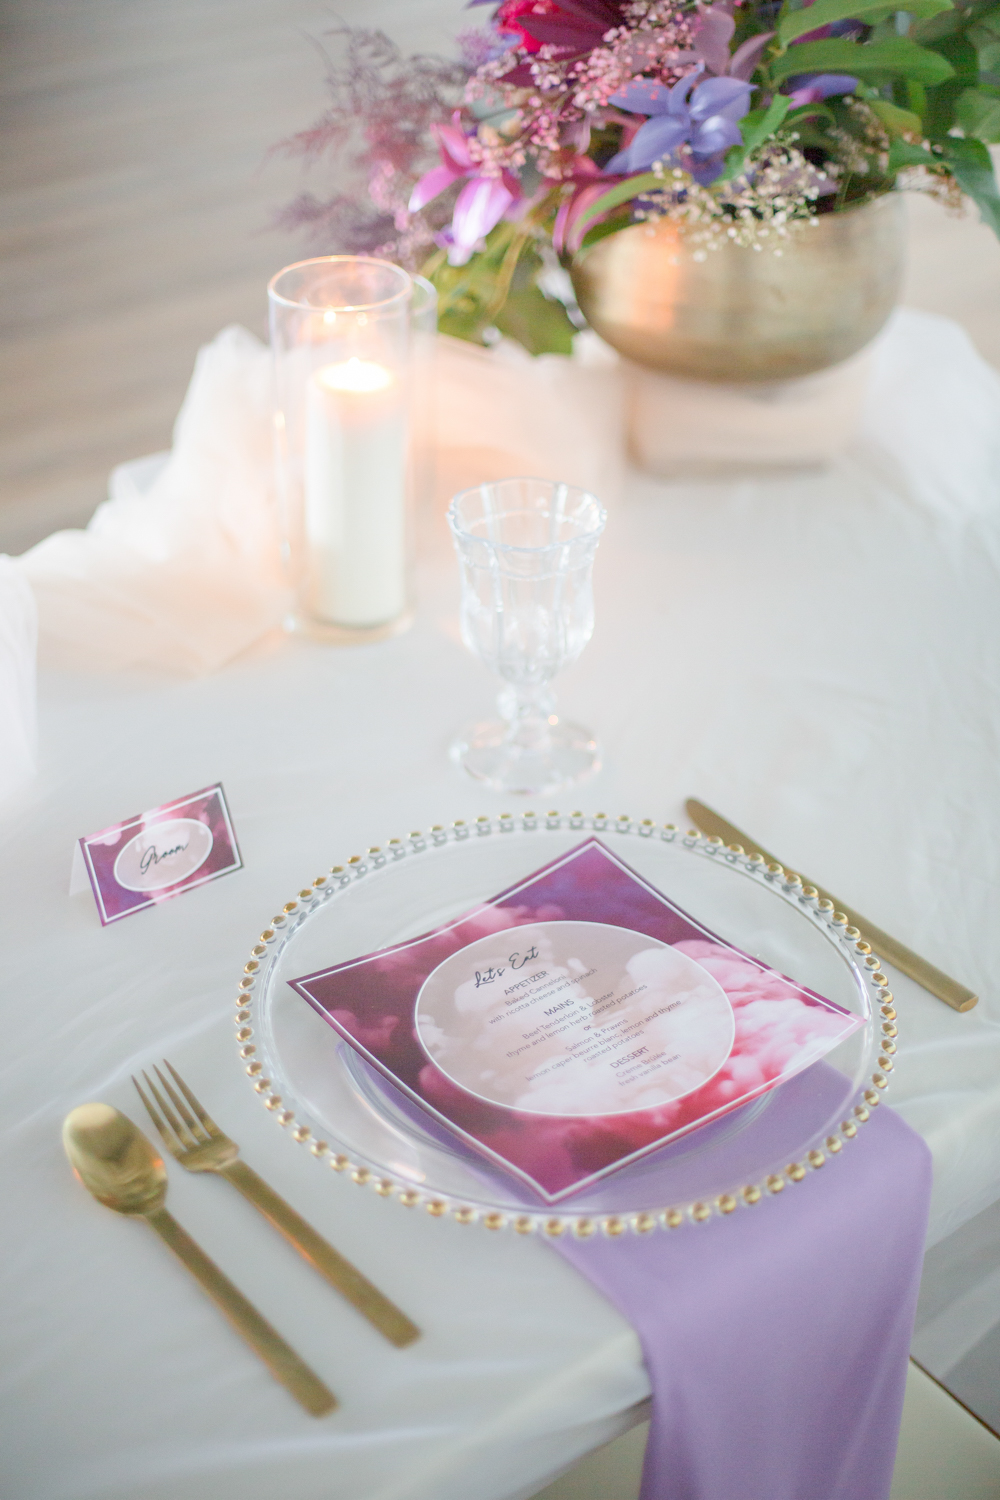 The wedding tablescape itself was simple, with a blush runner, candles, a sheer charger and gold cutlery , yet bright linens